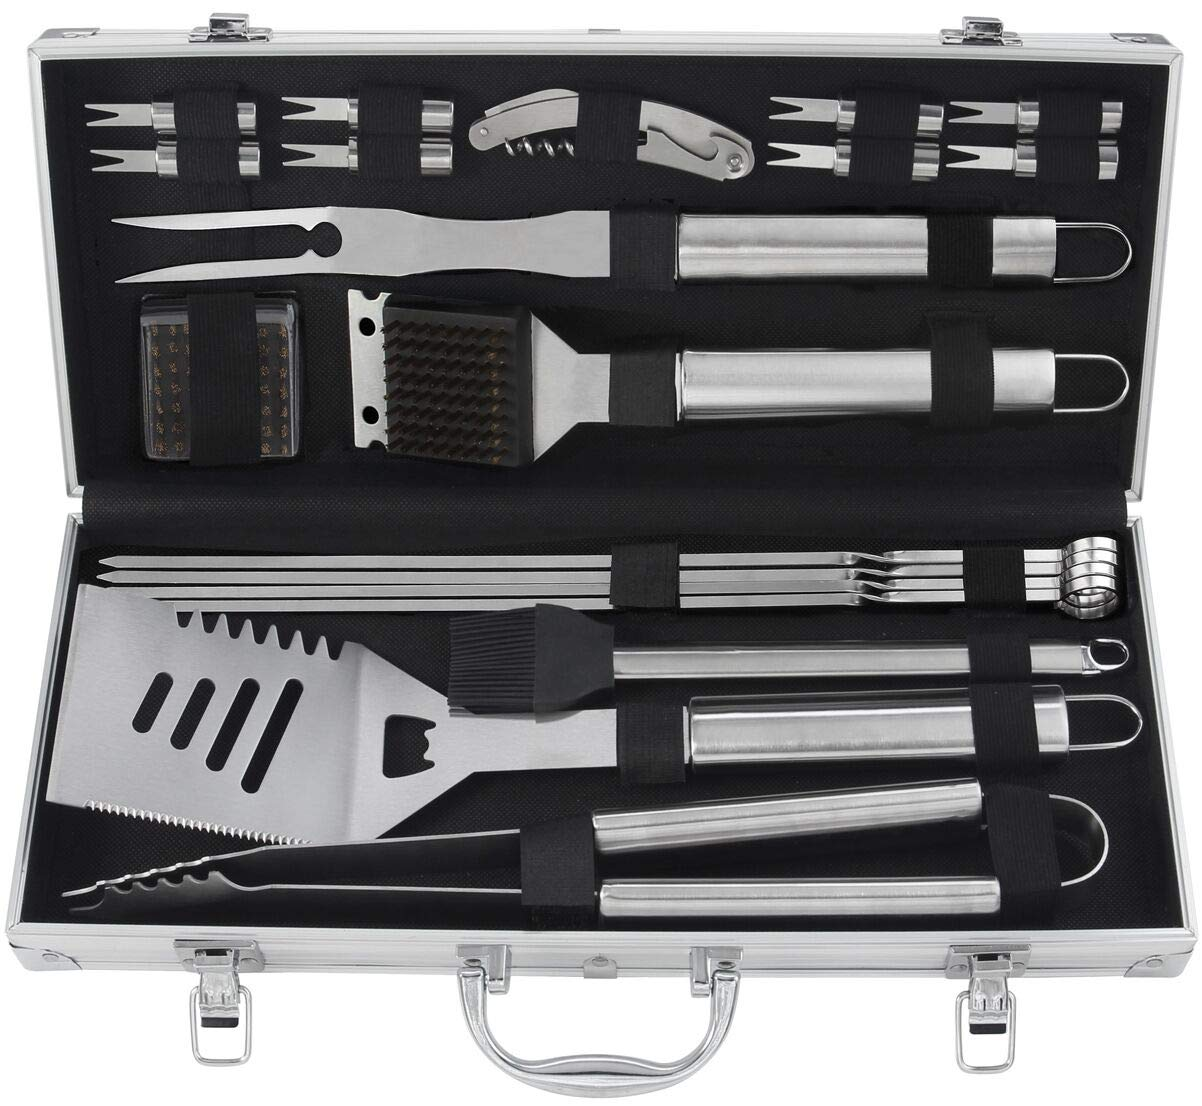 Grilljoy 20PCS Heavy Duty BBQ Grill Tools Set. Extra Thick Stainless Steel Spatula, Fork, eTongs & Cleaning Brush. Complte Barbecue & Grilling Accessories Kit in Aluminum Storage Case. Dishwasher Safe by grilljoy